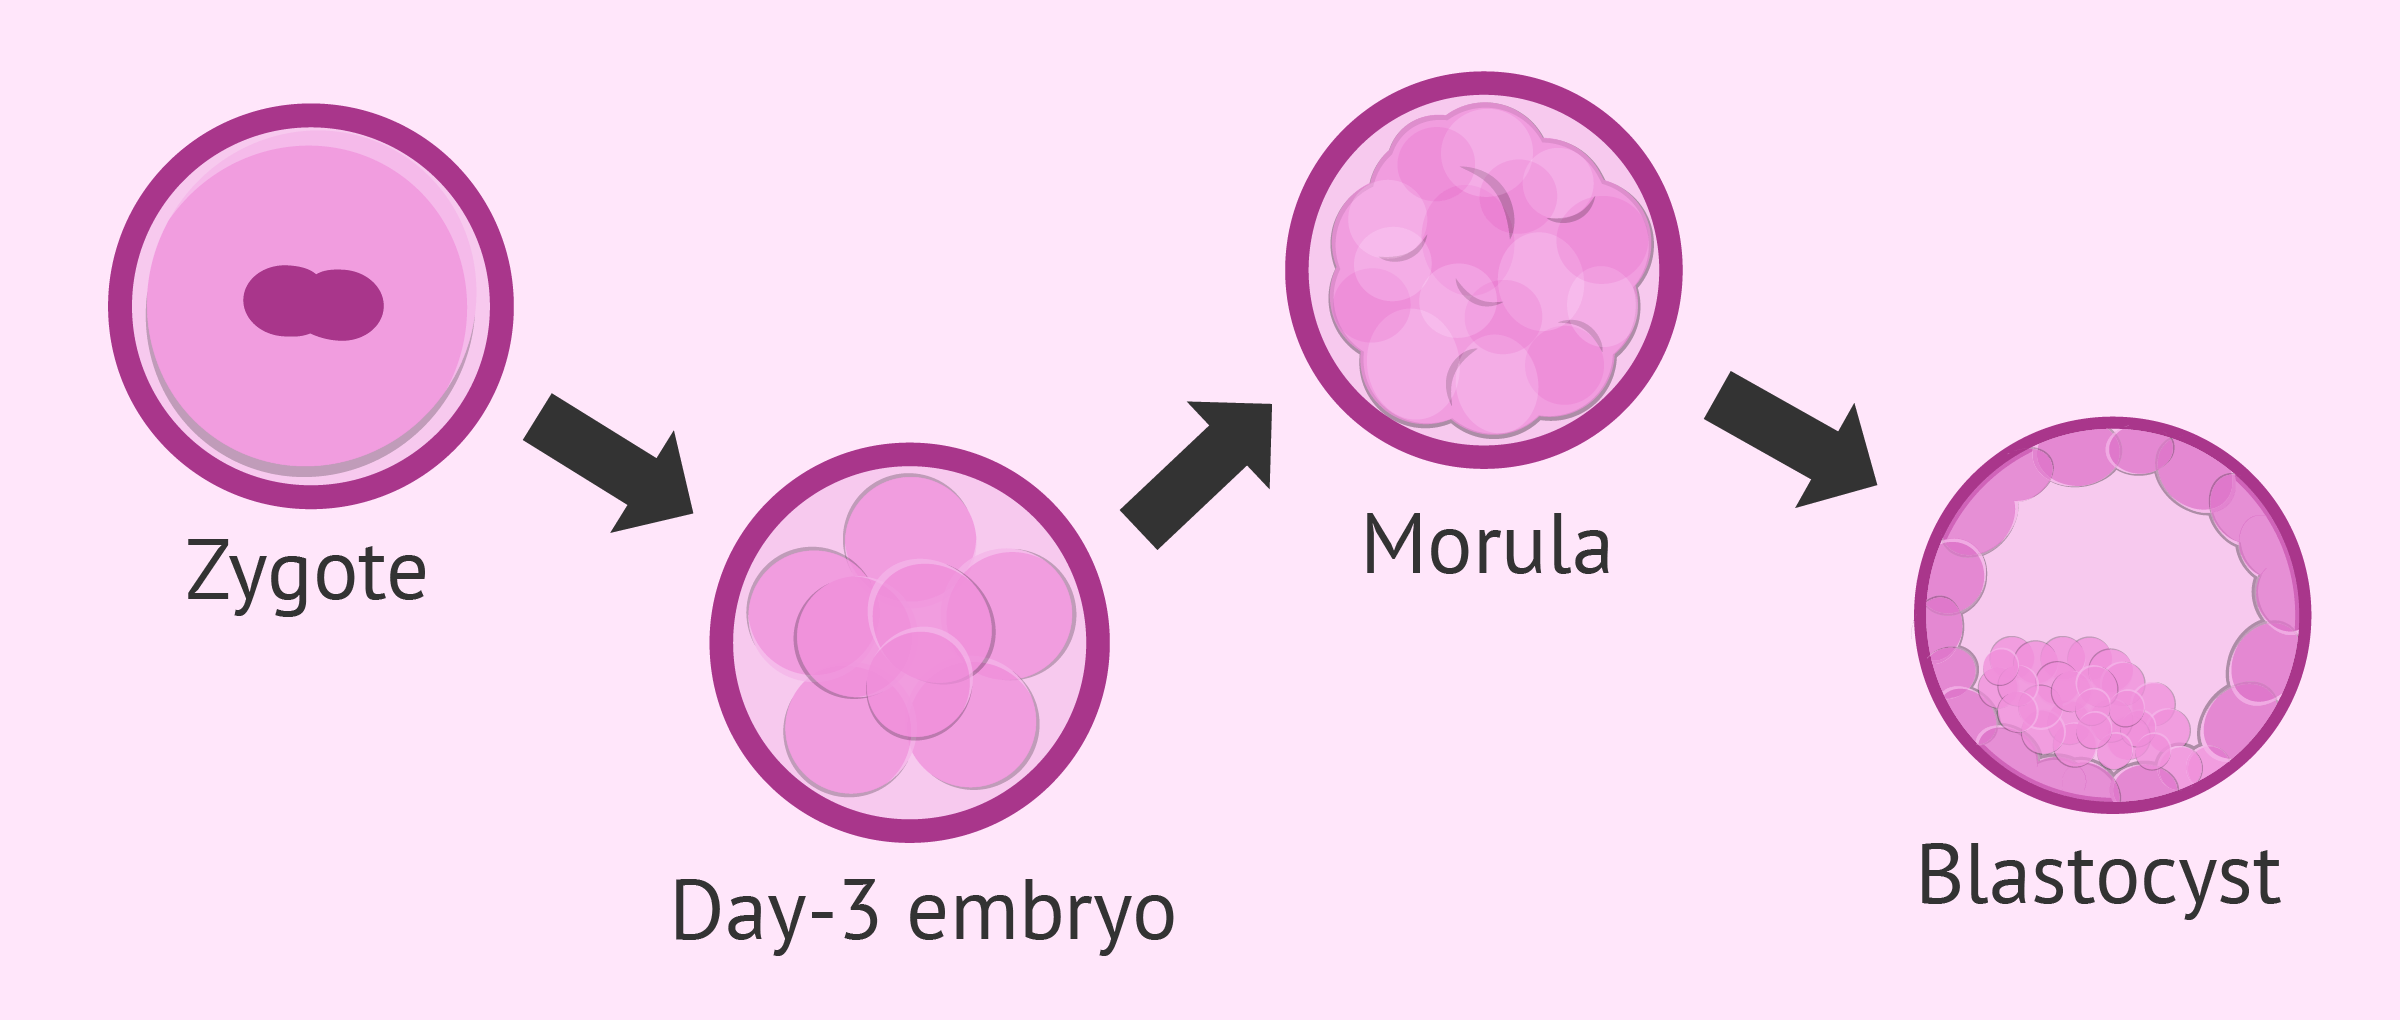 Embryo development after fertilization